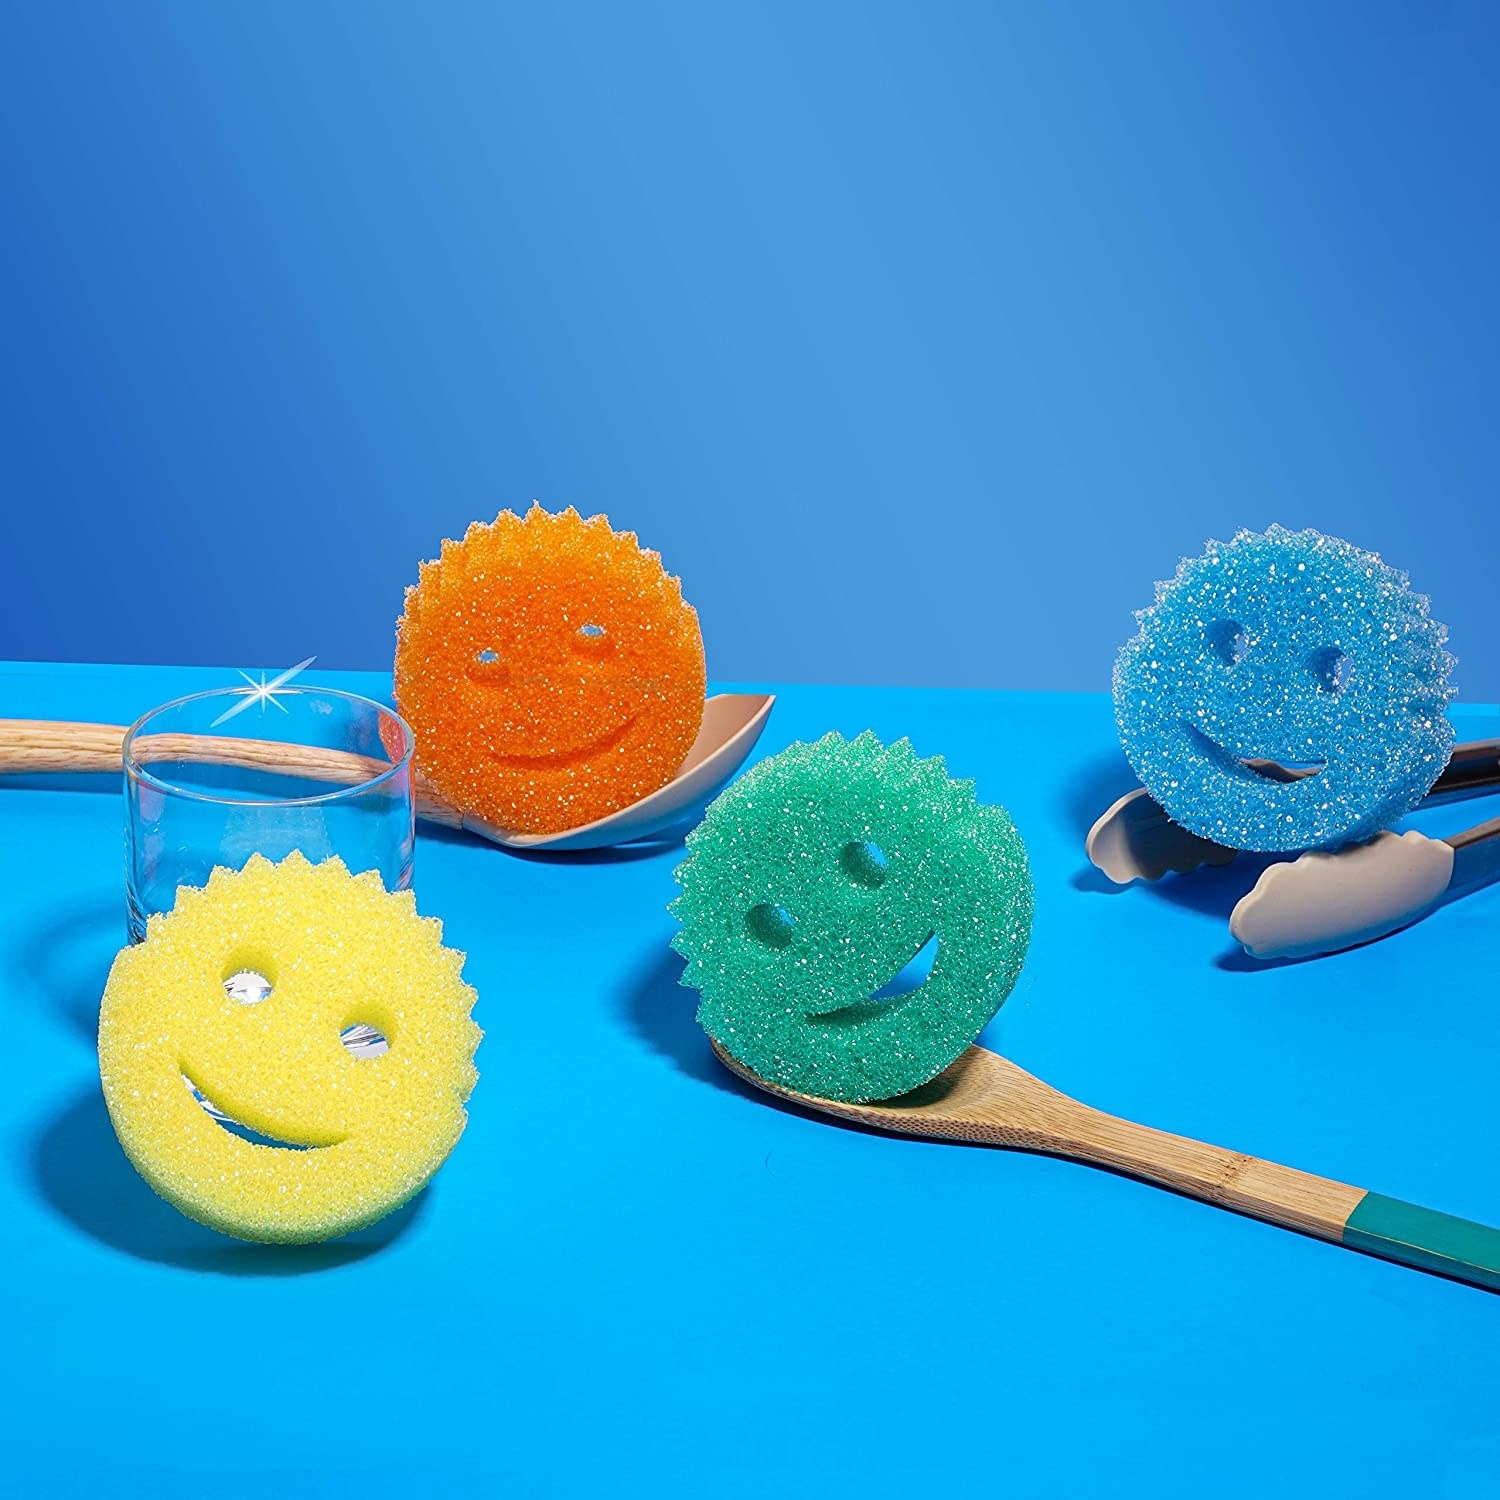 The smiley face shaped sponges in yellow, orange, green, and blue